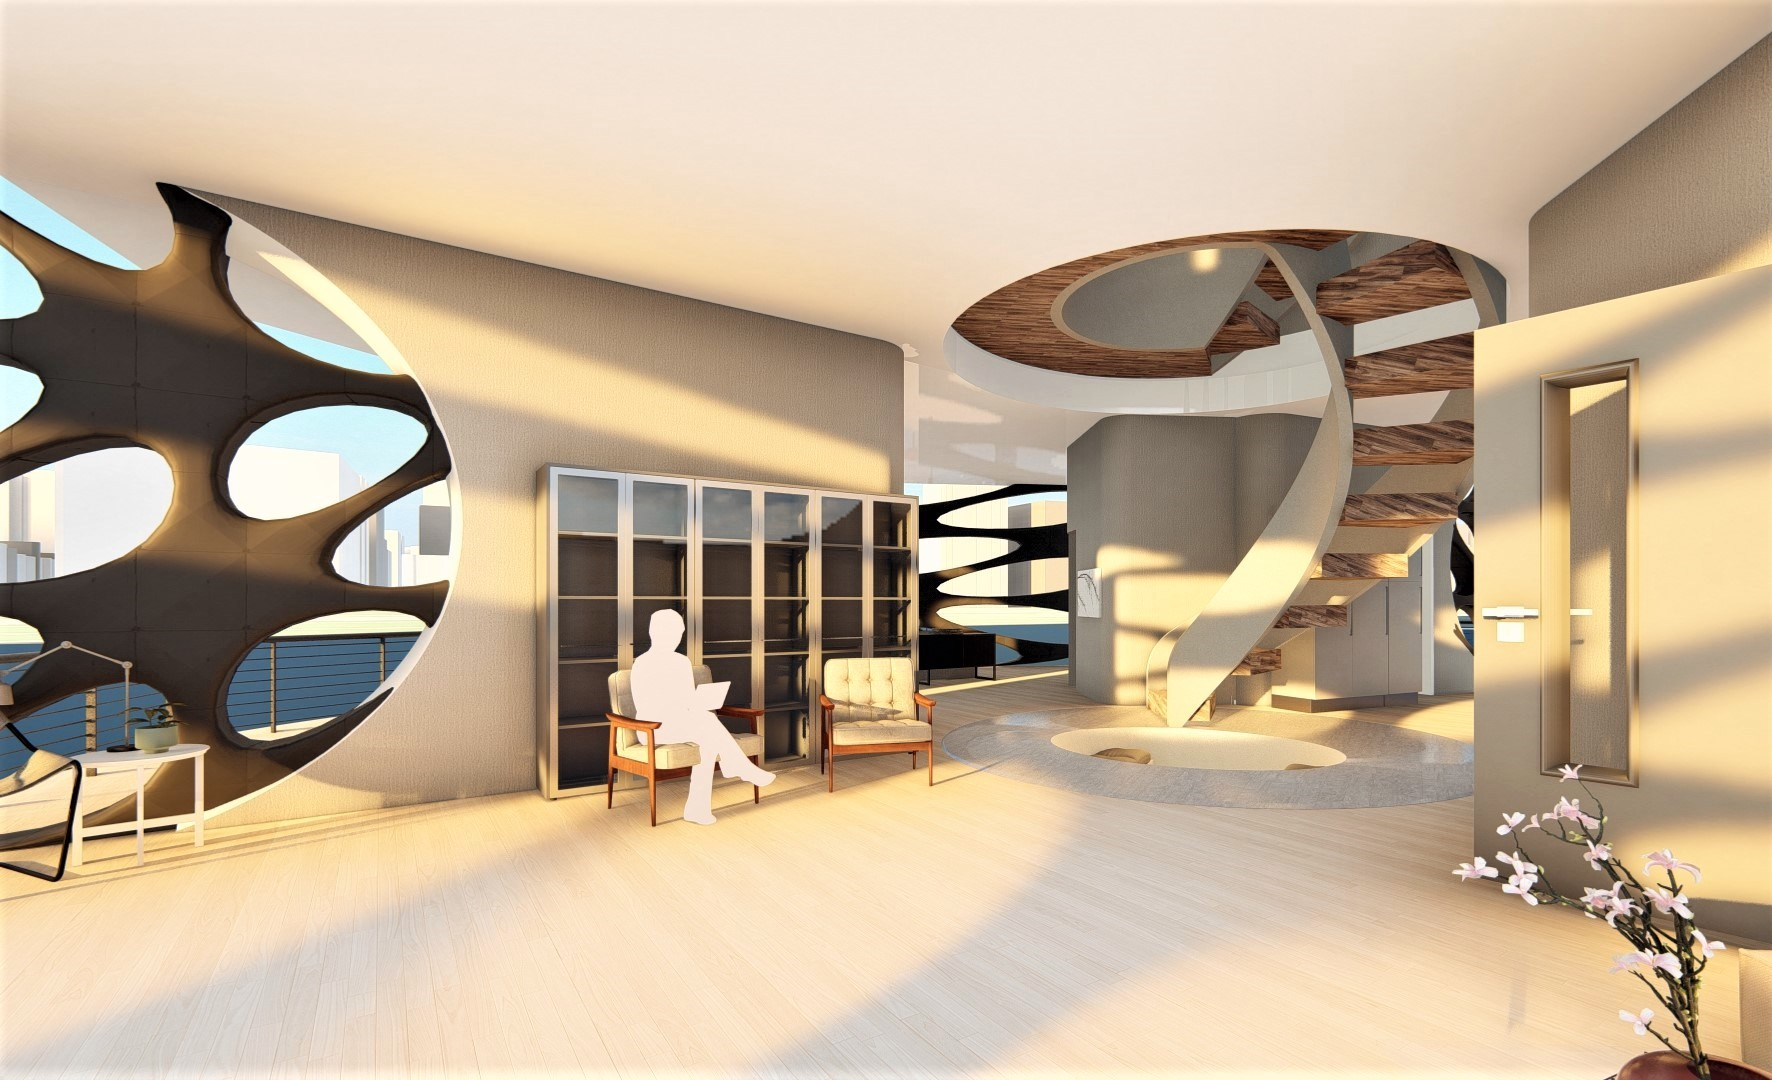 This is a interior Render of the building